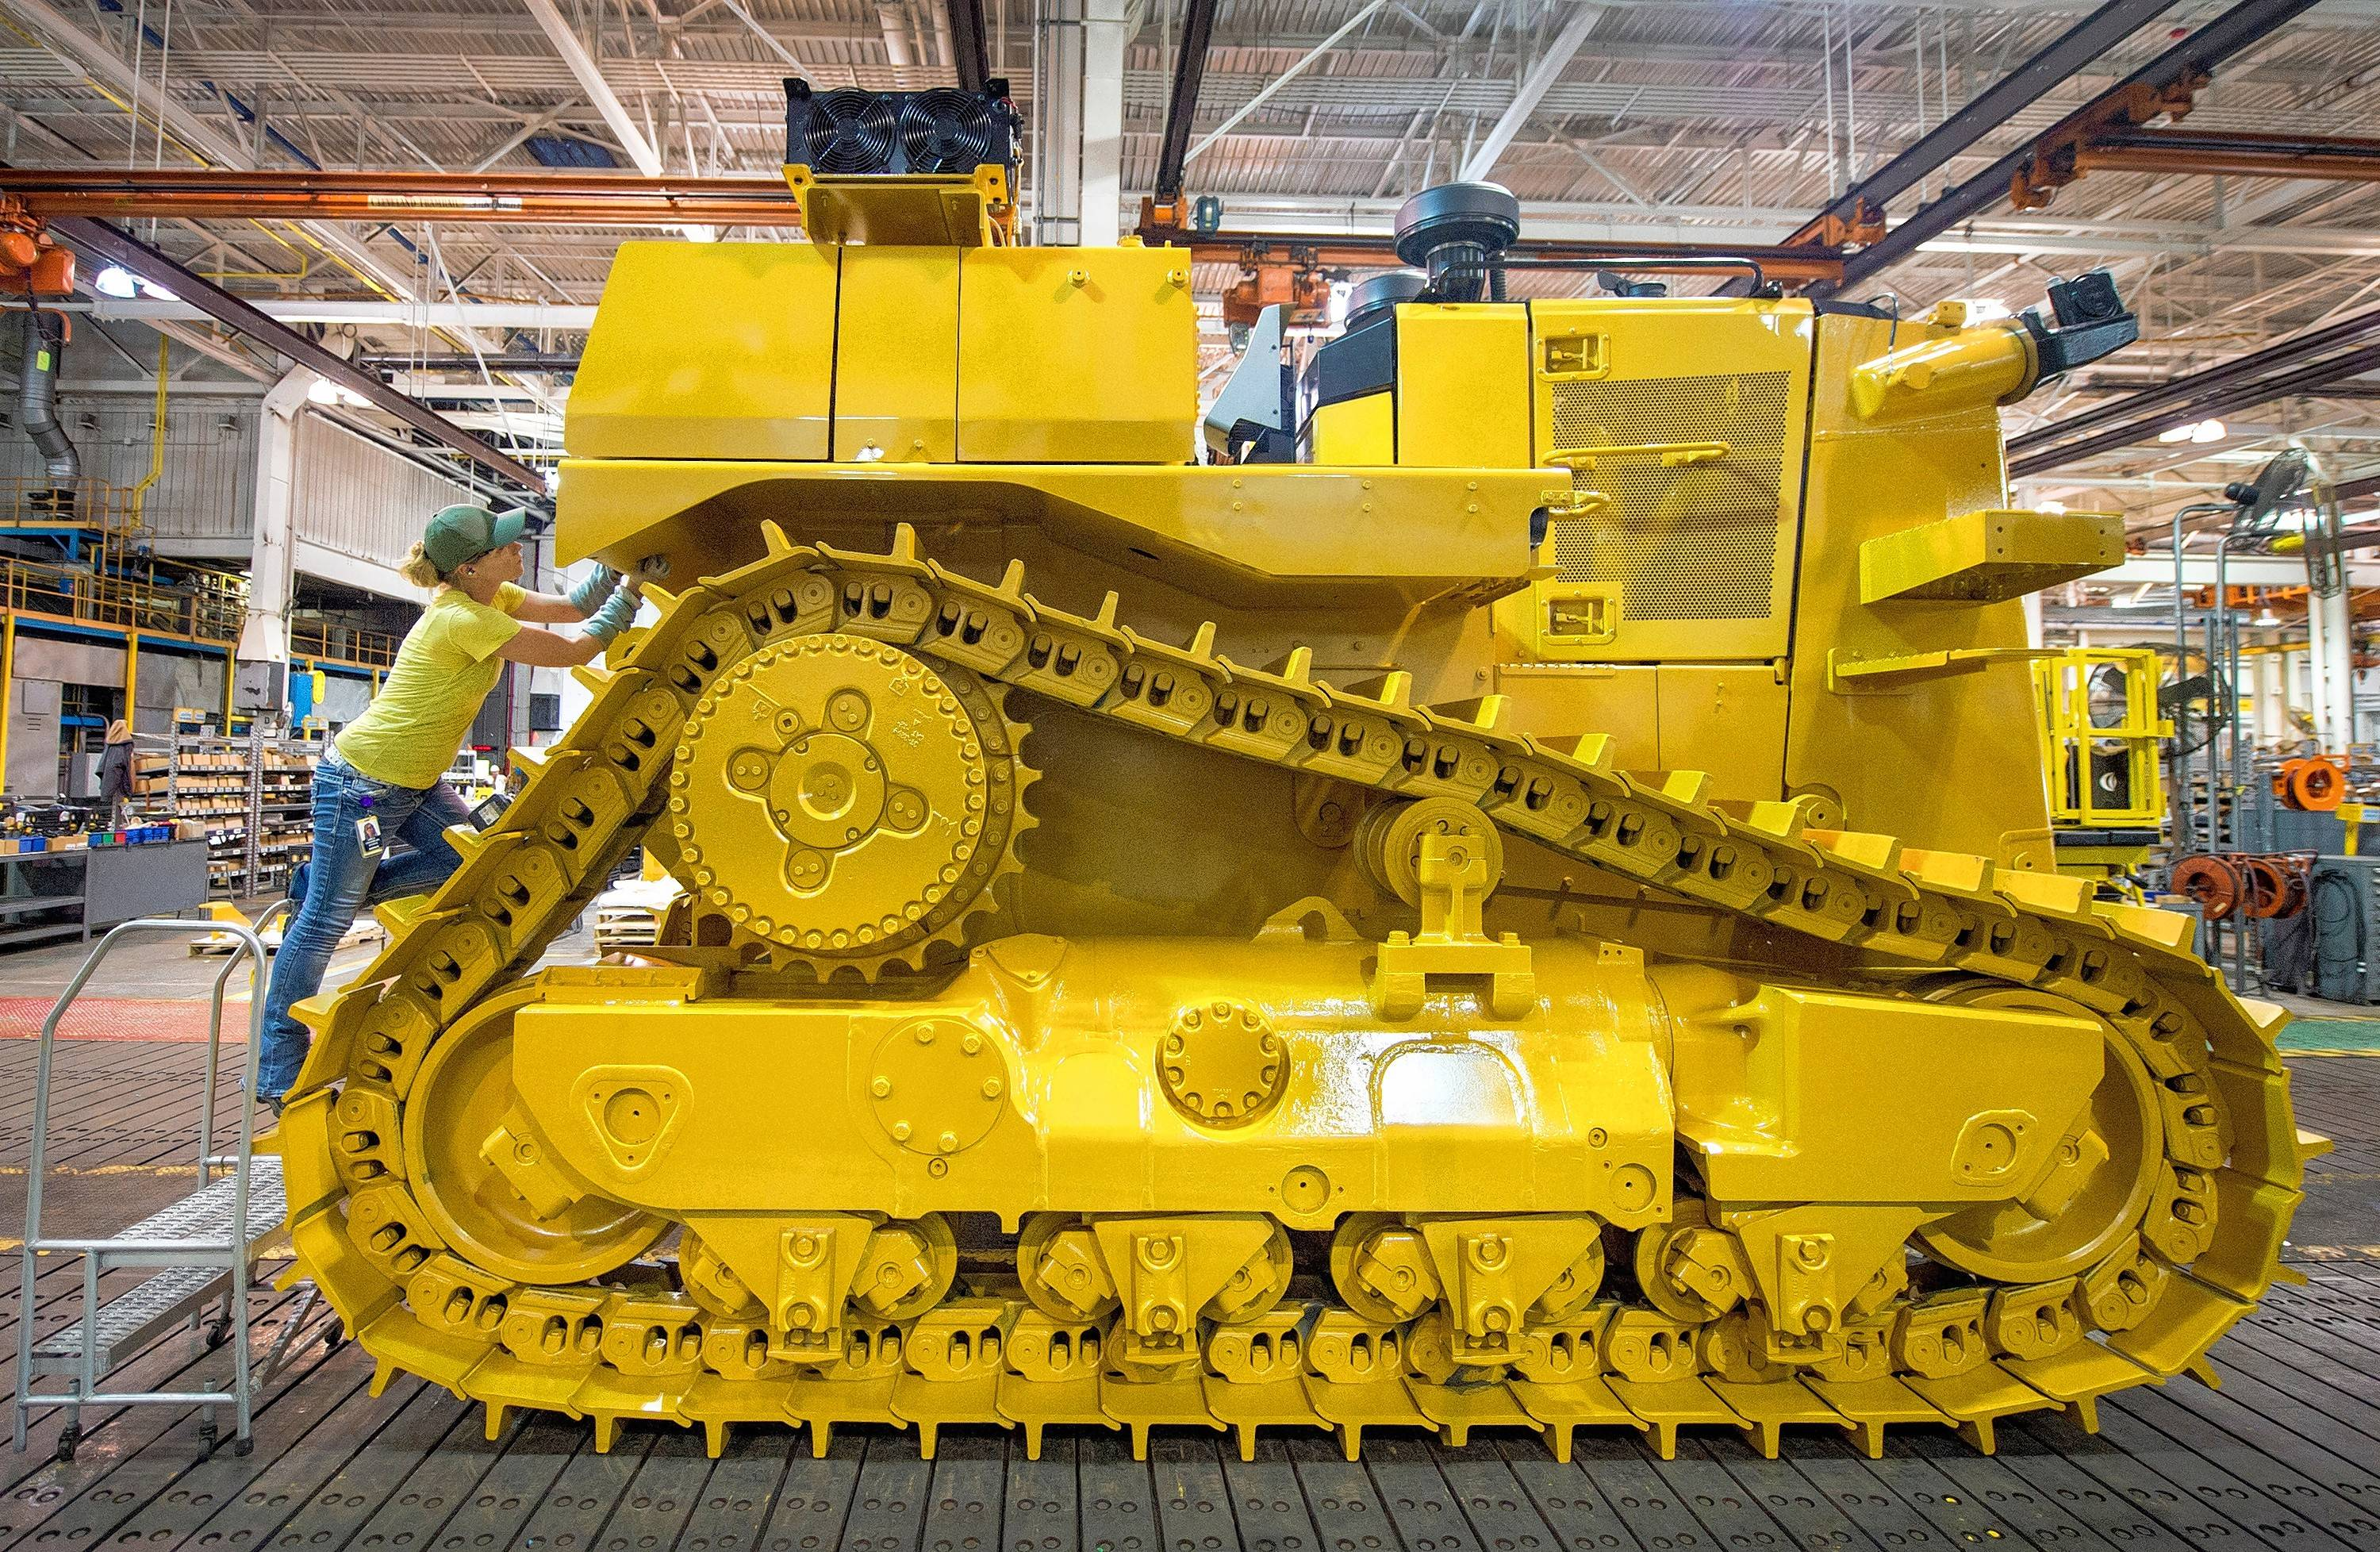 Illinois 200: Caterpillar's long central Illinois history, and its HQ move to the suburbs